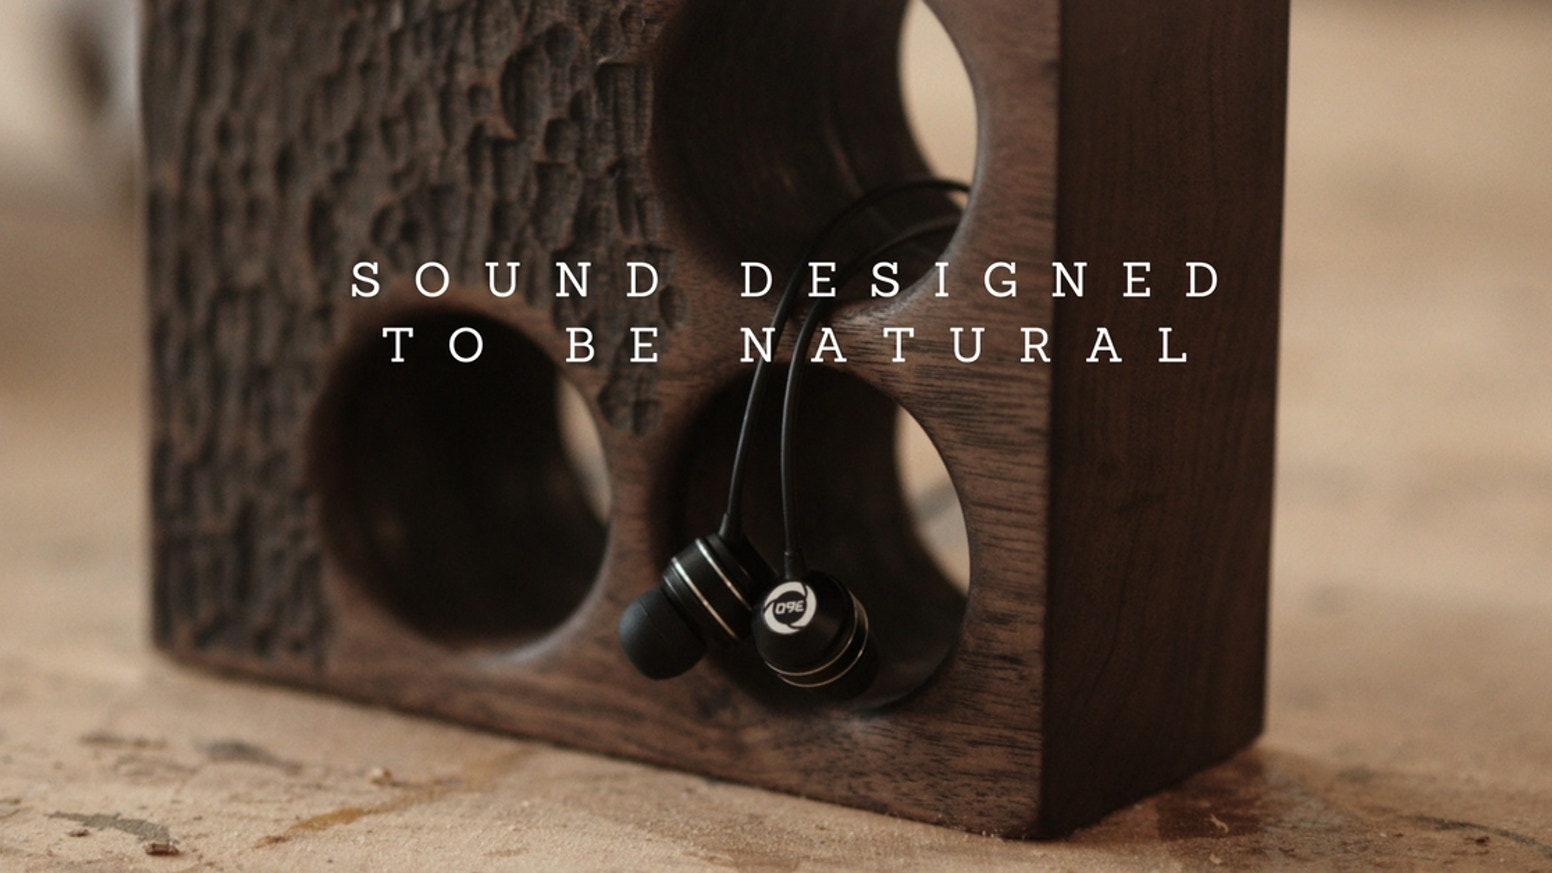 3D 5 1 Virtual Surround Sound Earbud with Premium Sub Bass